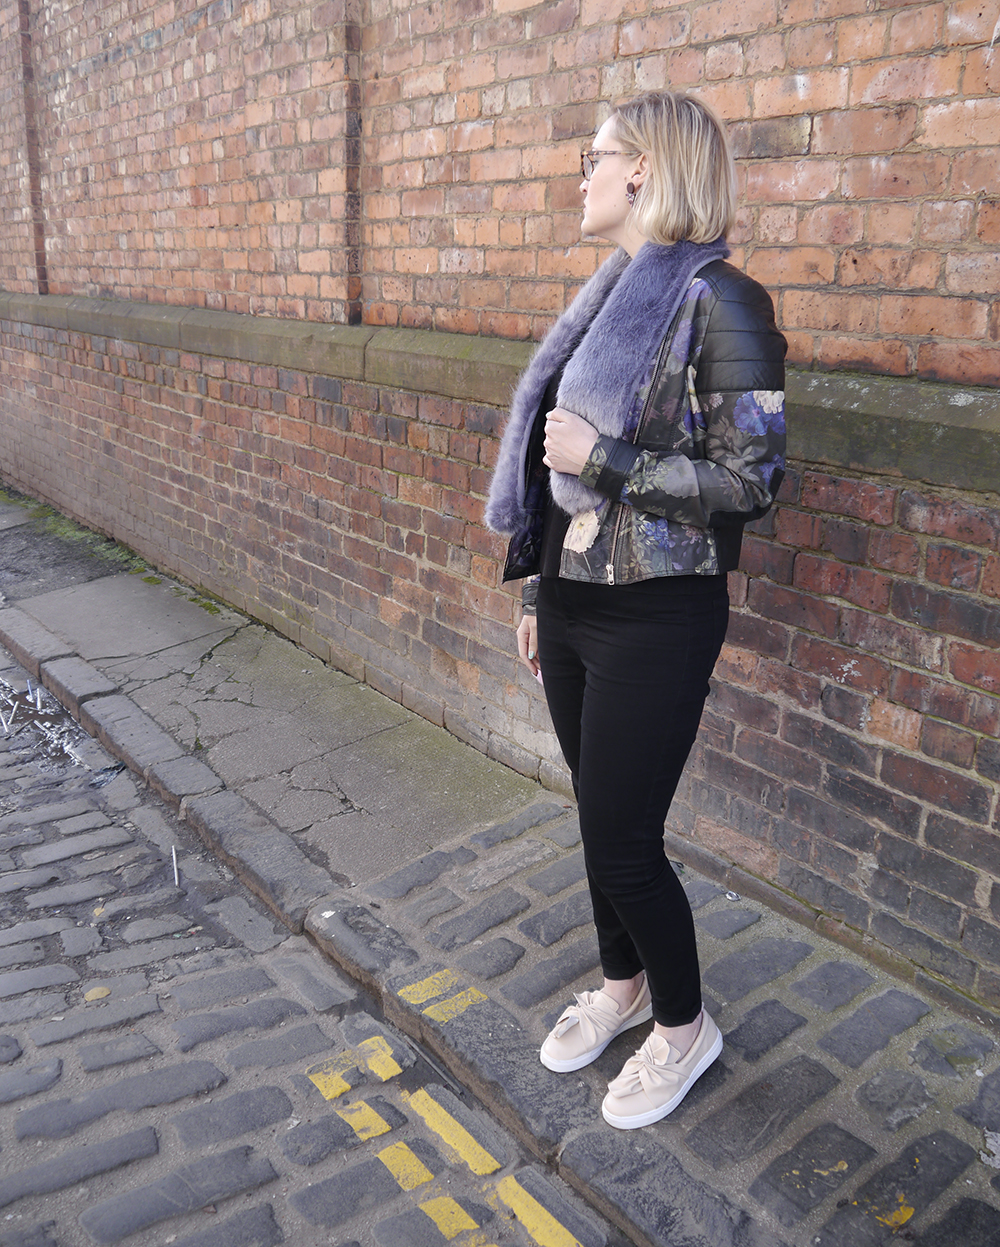 Fearne Cotton very collection, painted leather jacket, how to style a leather jacket, cool girl style inspiration, how to dress like a Cool Girl, Wardrobe Conversations blog, Glasgow outfit photo location